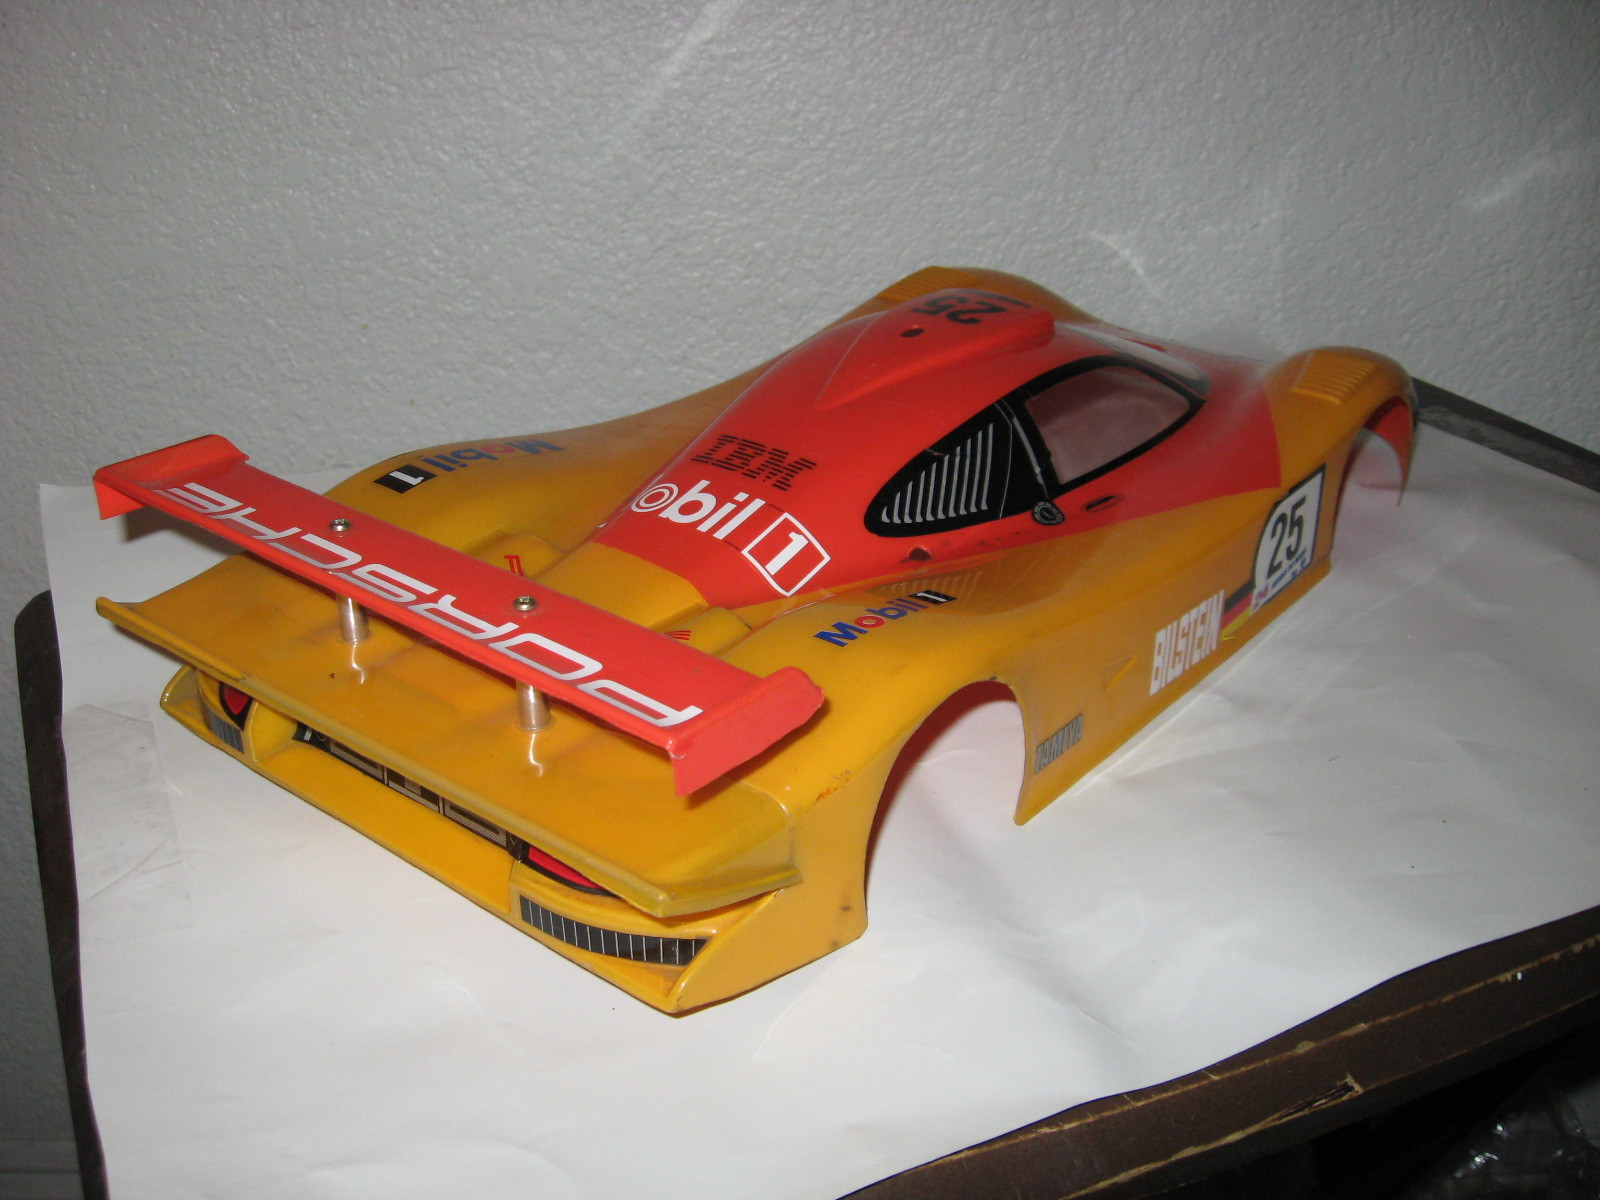 used tamiya porsche for sale 43 ads in us. Black Bedroom Furniture Sets. Home Design Ideas